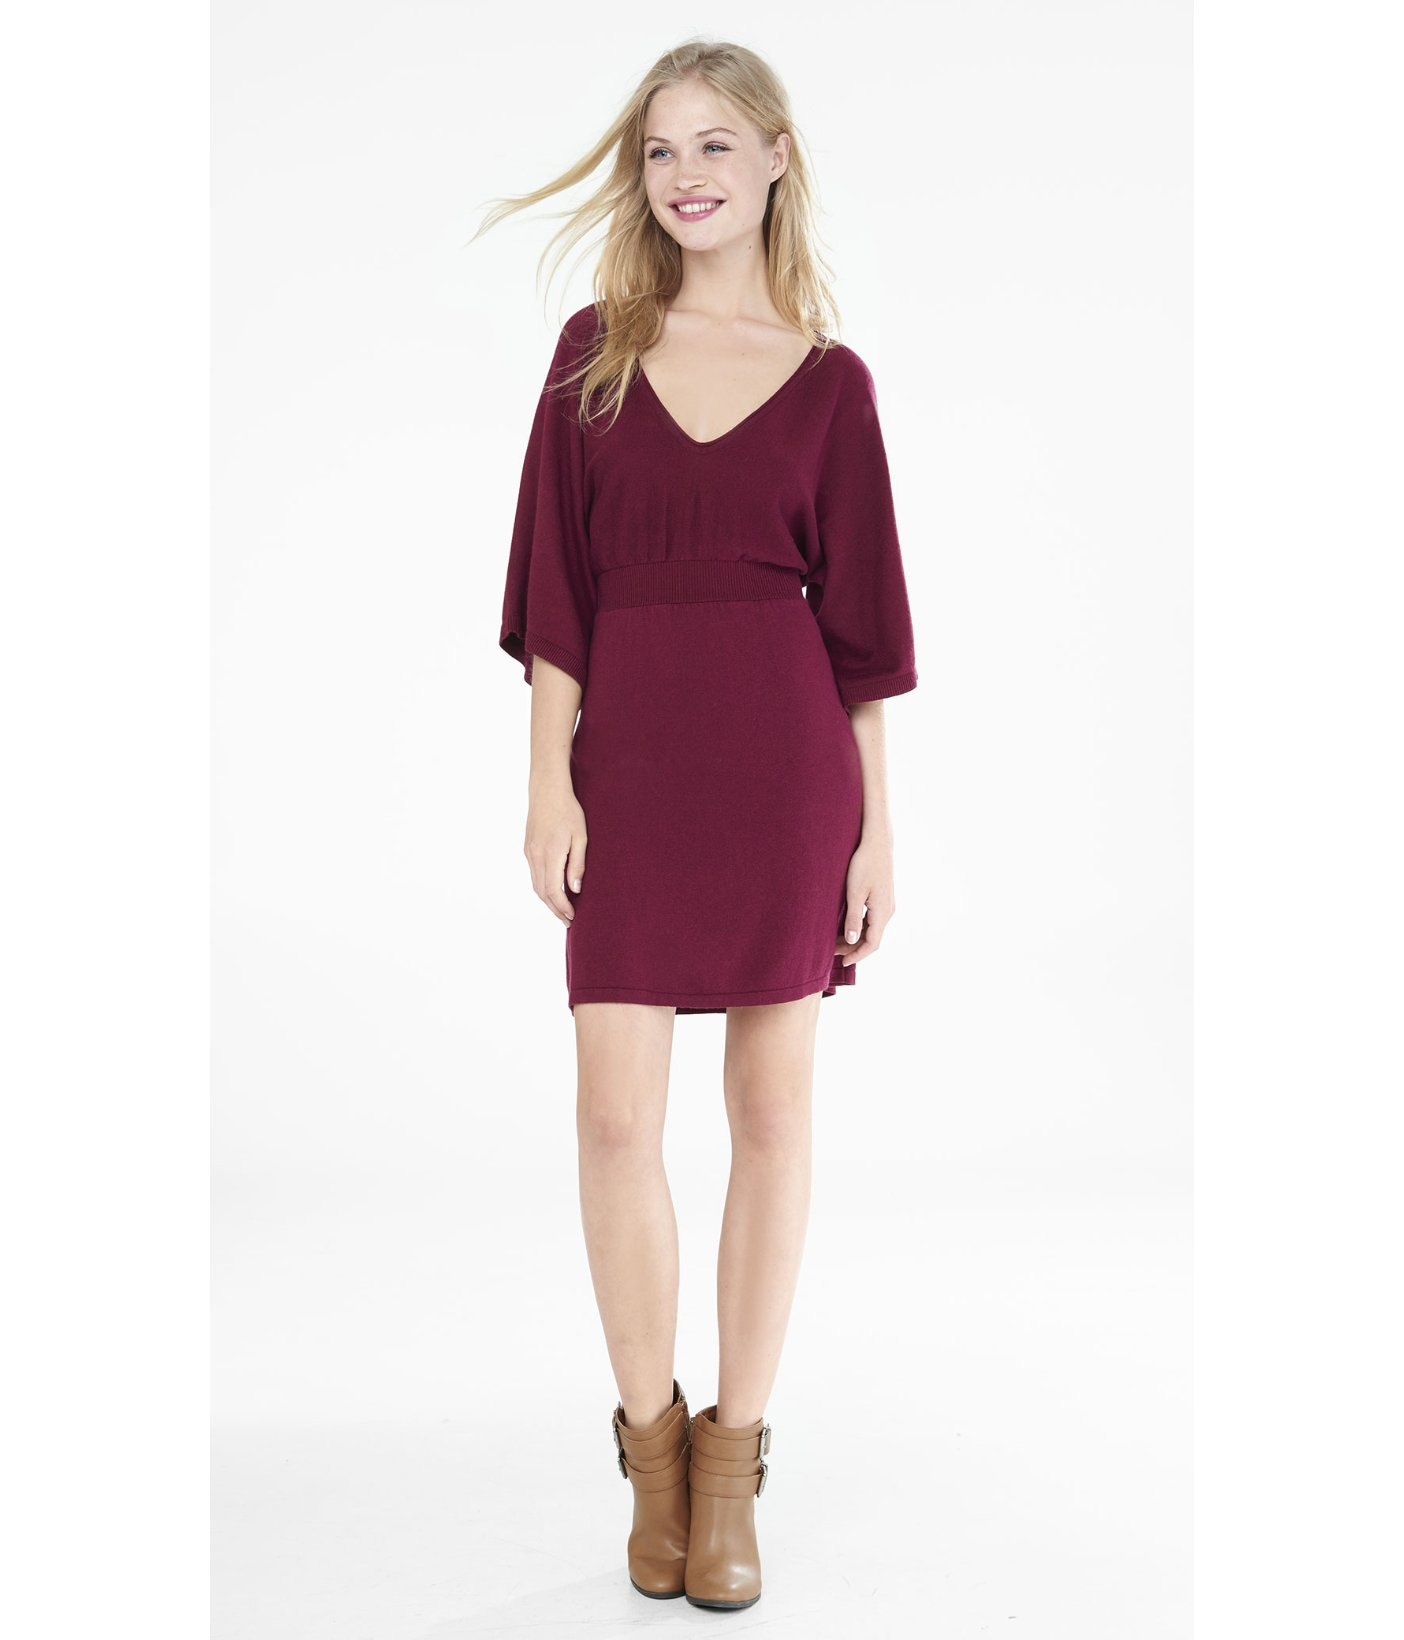 a59af74e8a8 Lyst - Express Berry Kimono Sleeve V-neck Sweater Dress in Purple